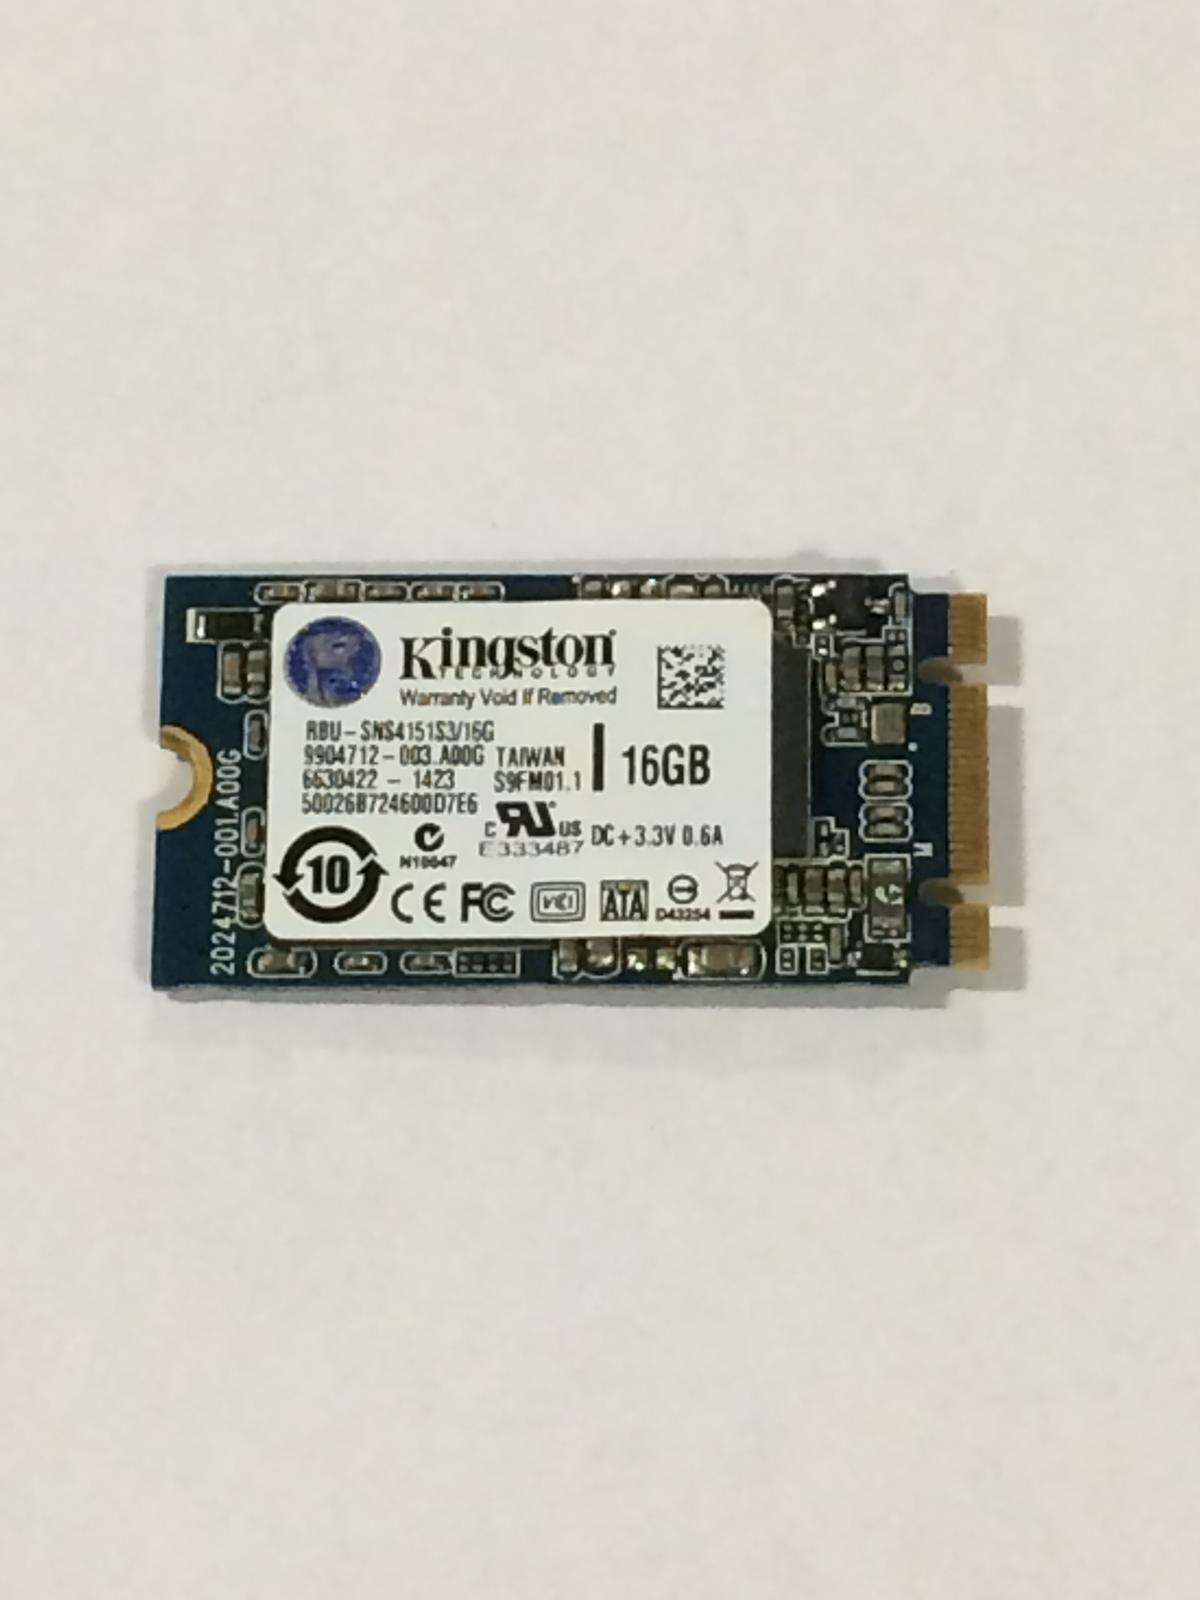 Kingston 16GB  M.2 NGFF 2242 42mm SSD  SNS415S3//16GD  Solid State Drive